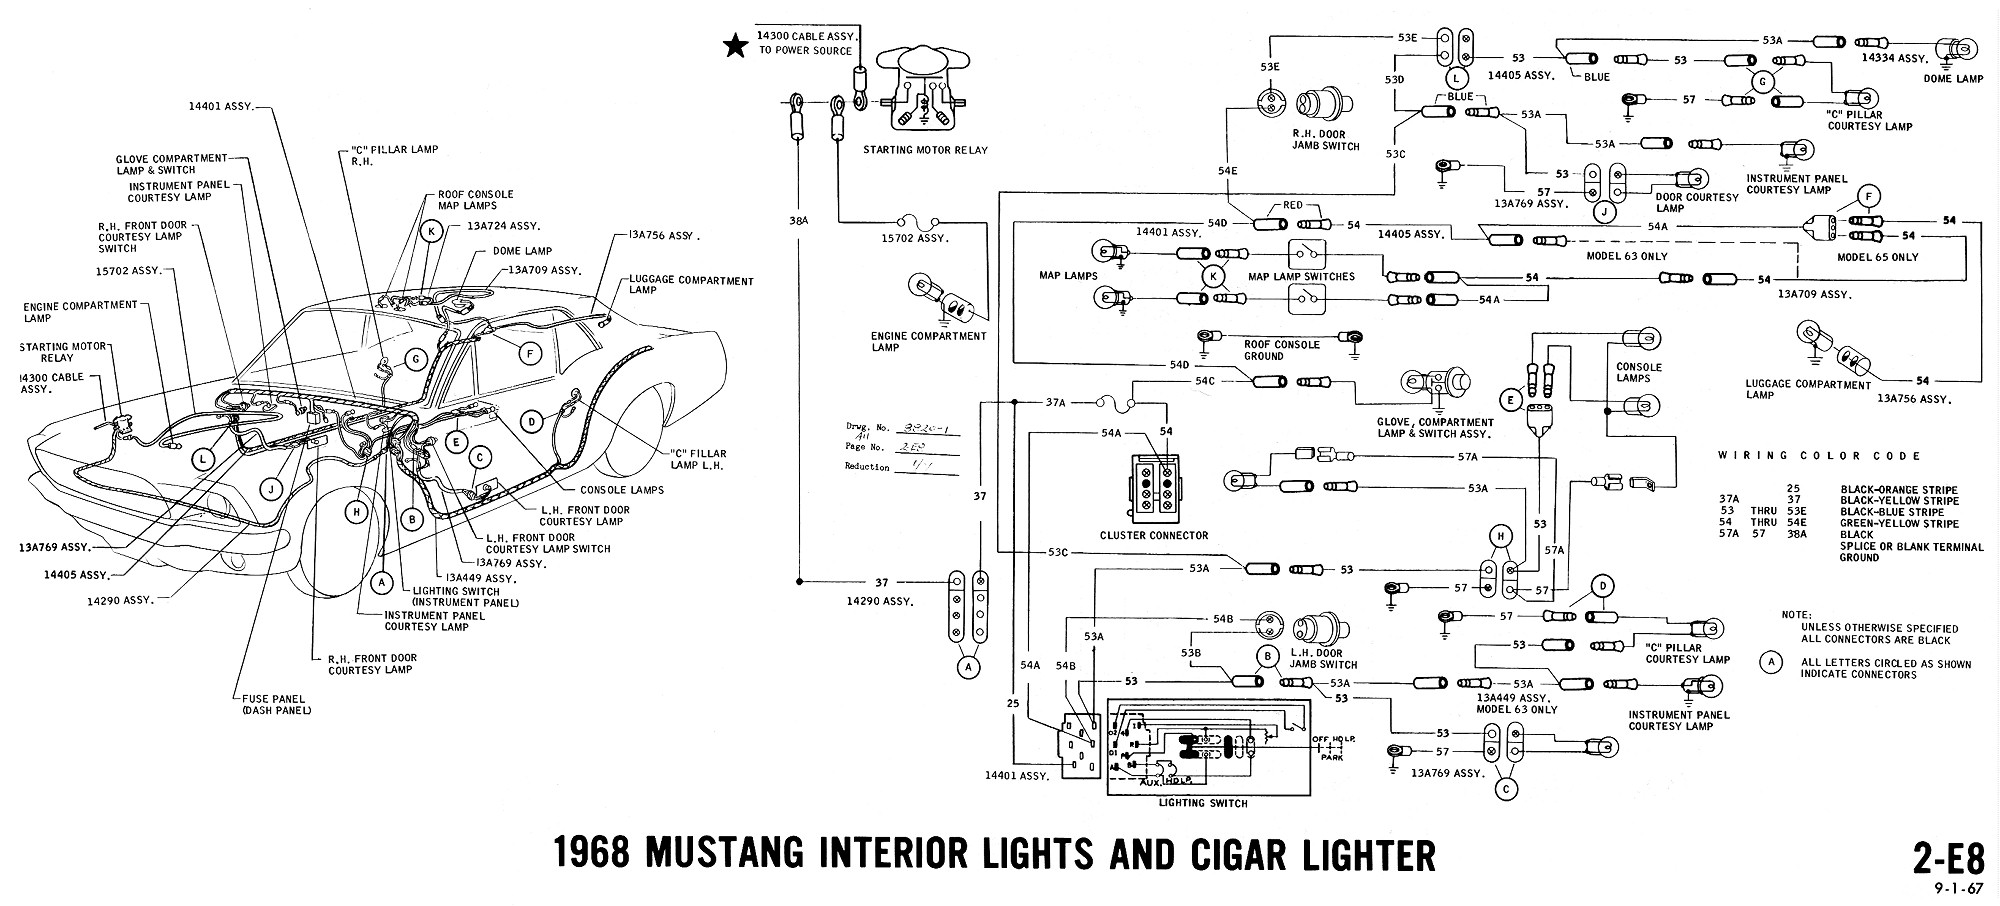 wiring harness alternator with 1968 Mustang Wiring Diagram Vacuum Schematics on Takeuchi Excavator Wiring Diagram additionally Voltage as well Alternator Conversion besides Cat 3208 Starter Wiring Diagram furthermore Index.